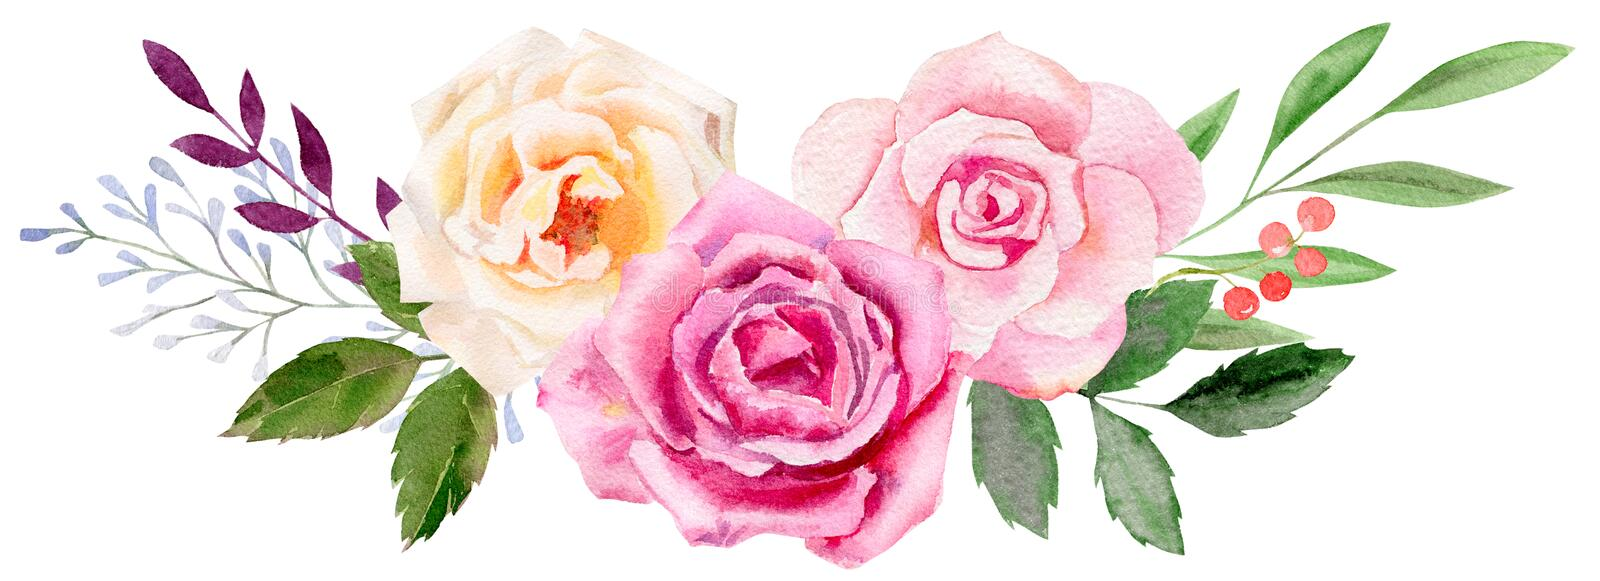 Hand painted watercolor mockup clipart template of roses vector illustration